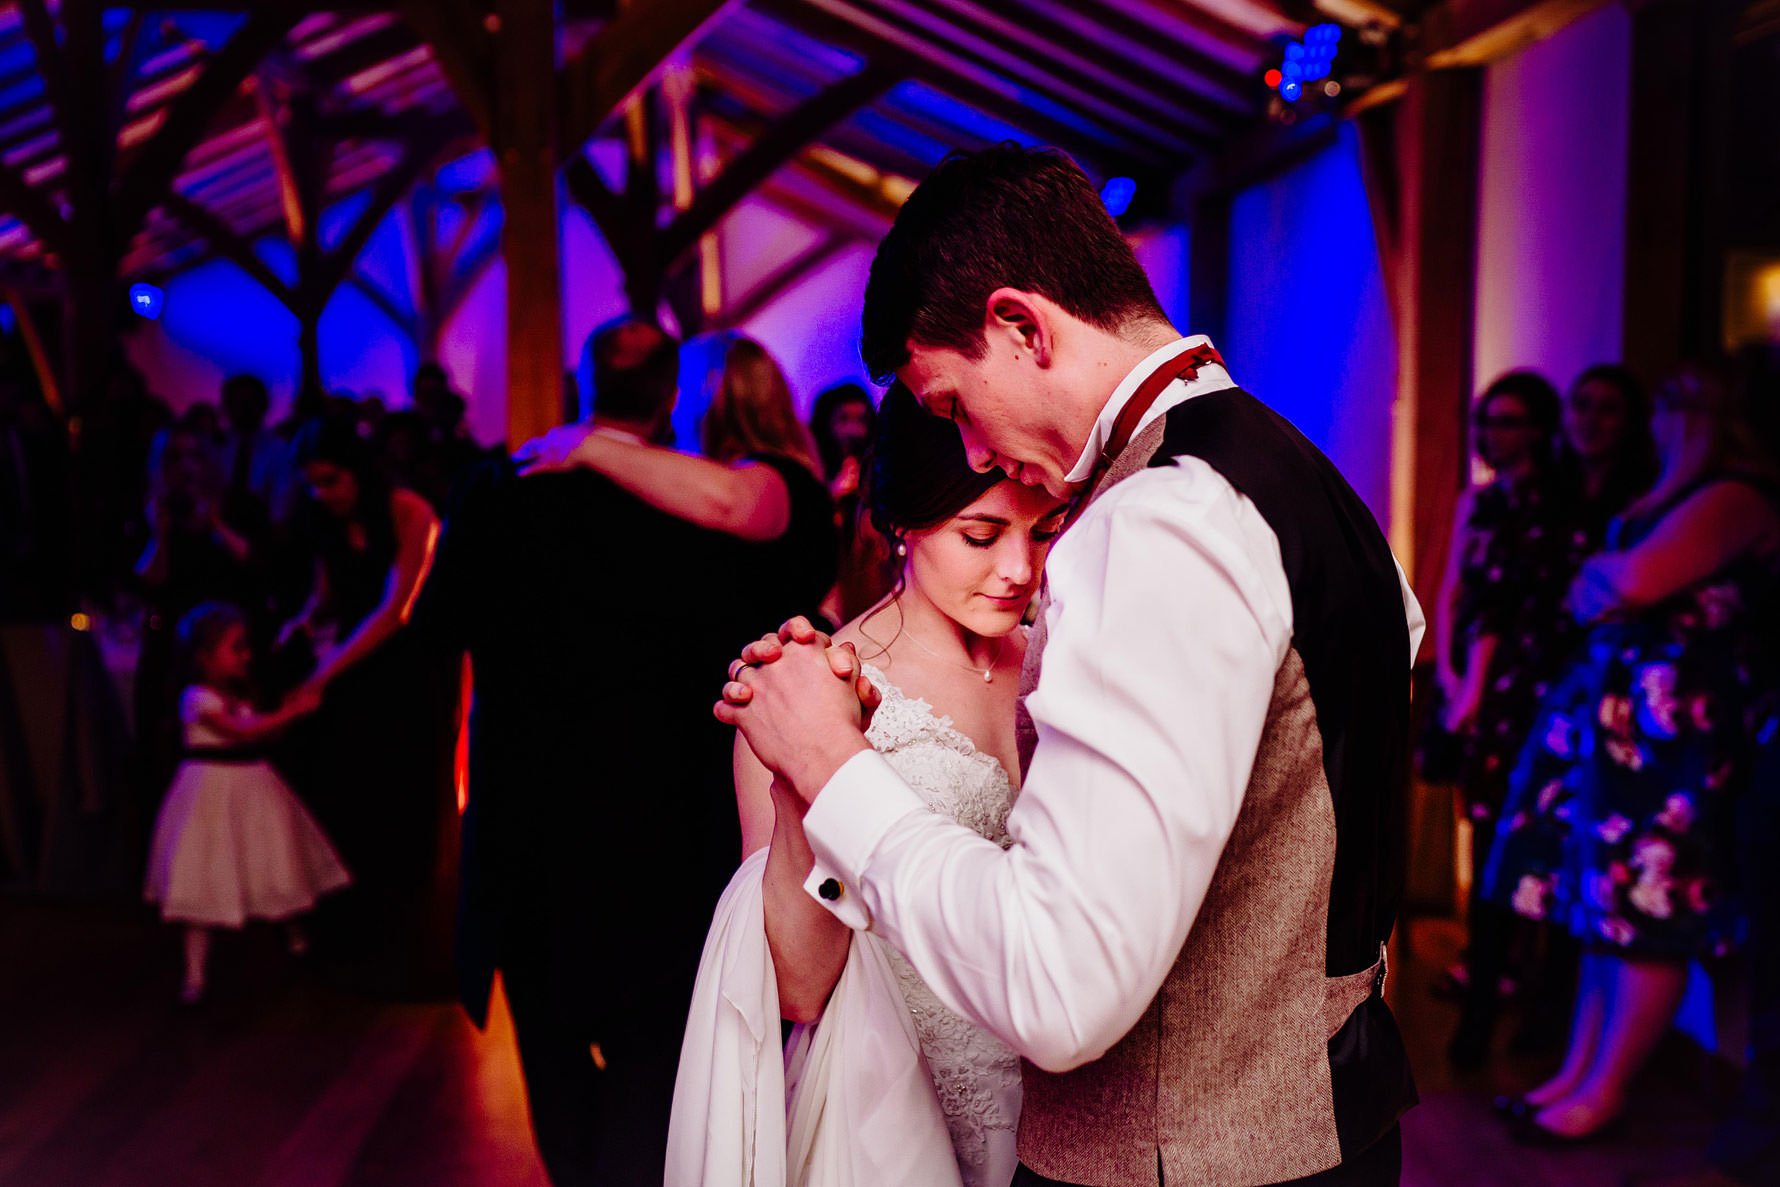 a colourful image of a first dance